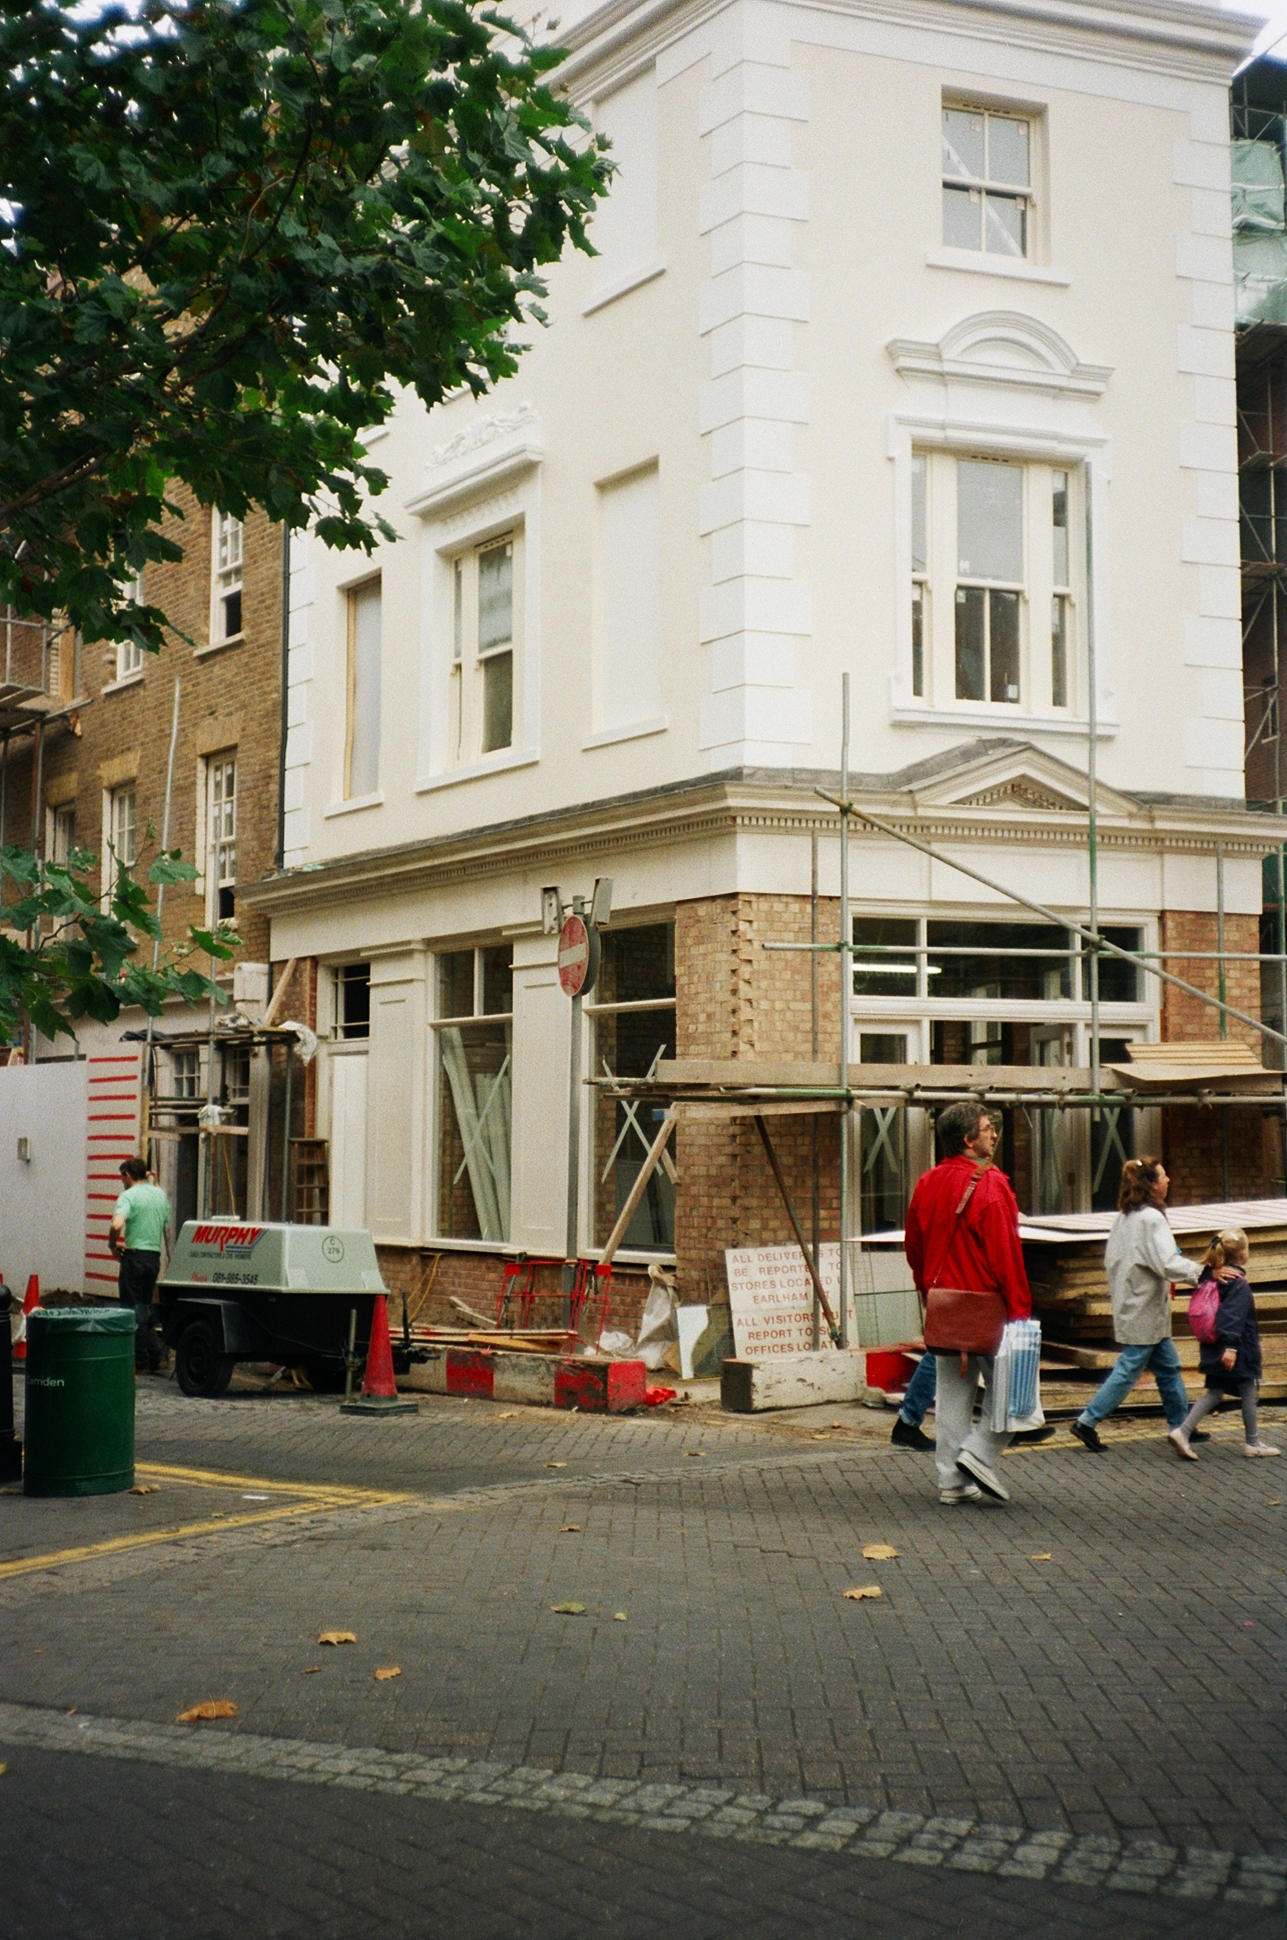 Building formerly The Grapes public house on The Dials being restored.